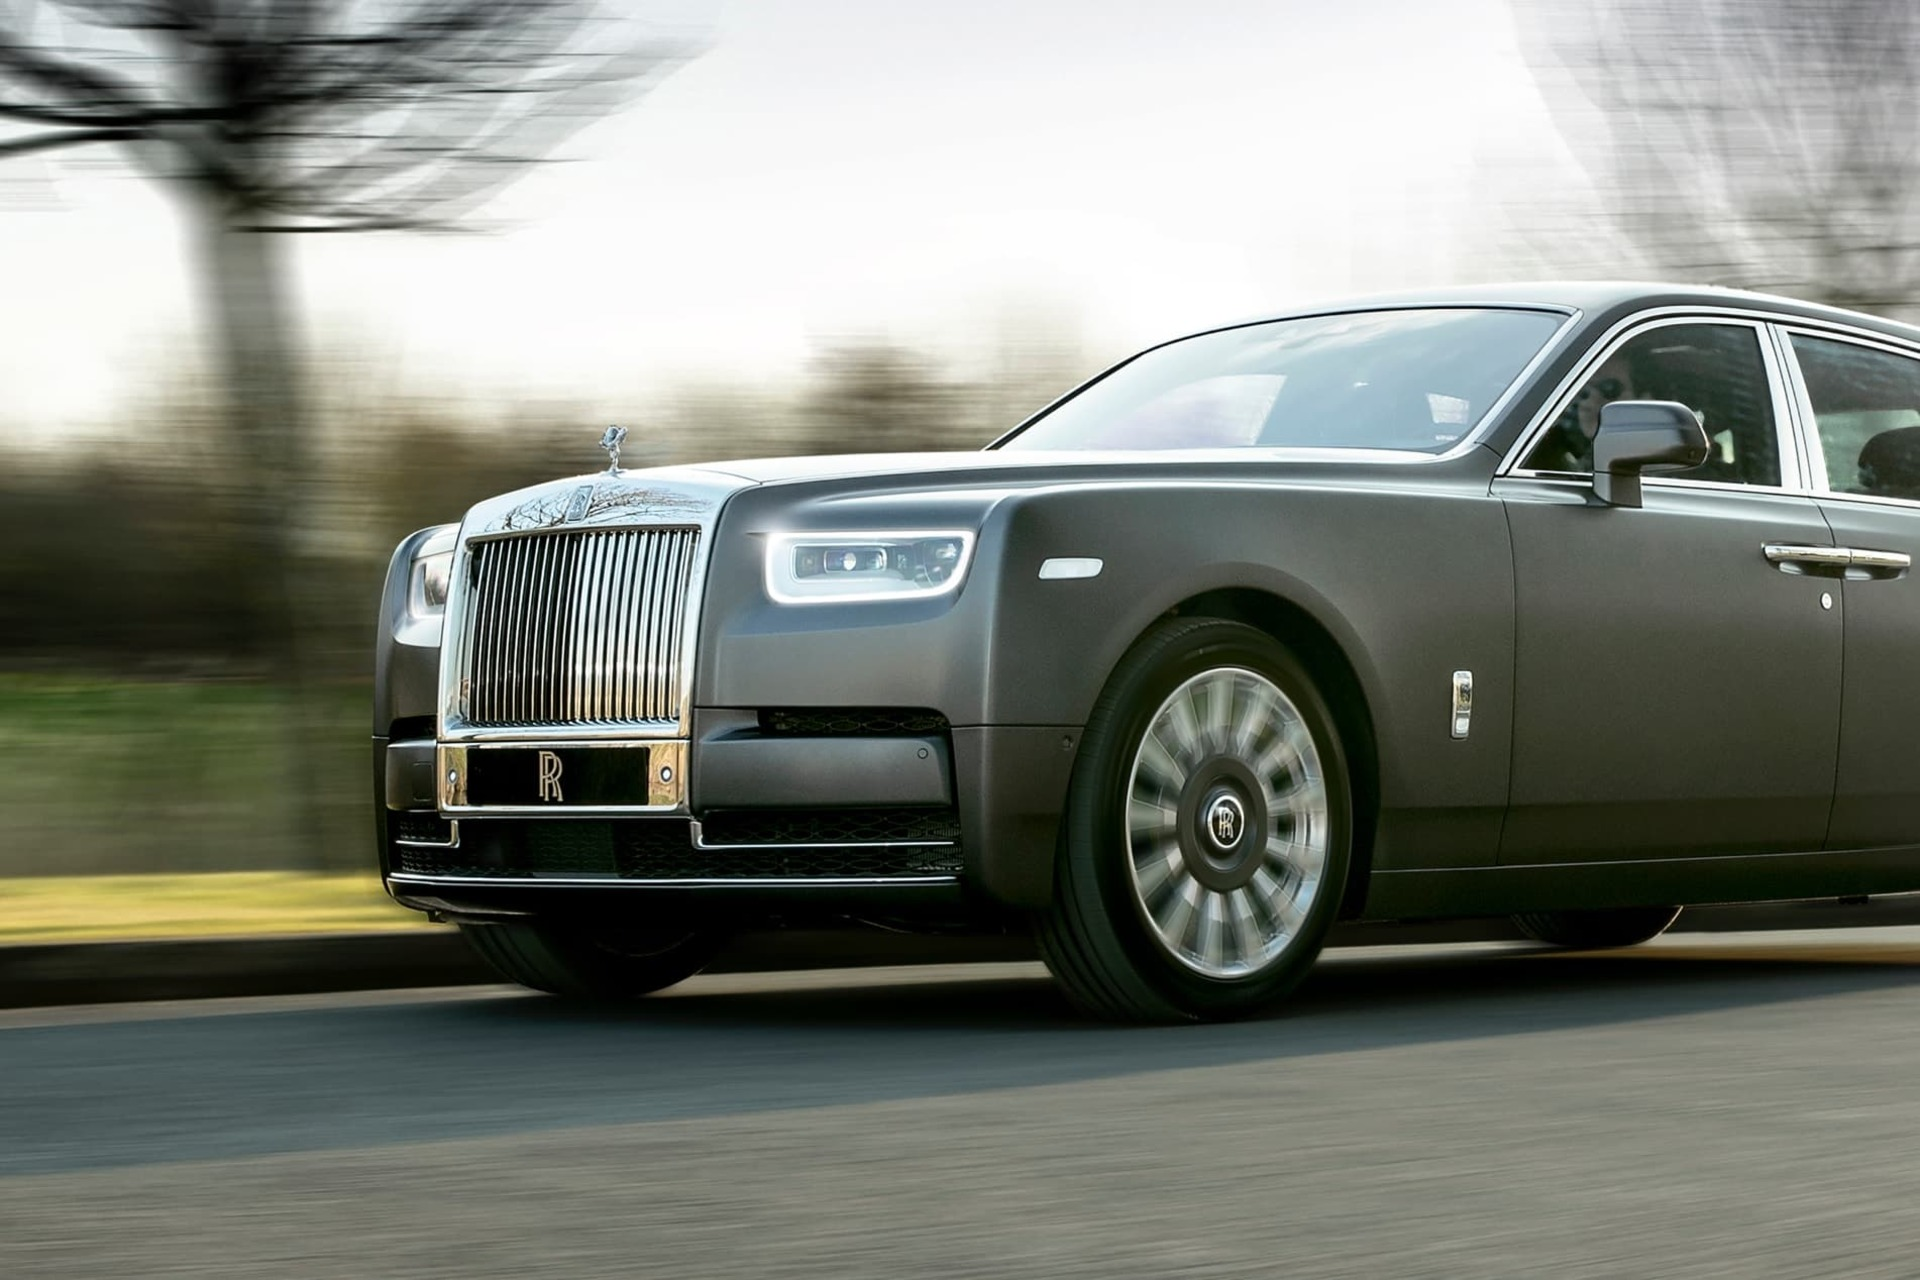 Front exterior shot of Rolls-Royce Gentleman's Tourer Phantom